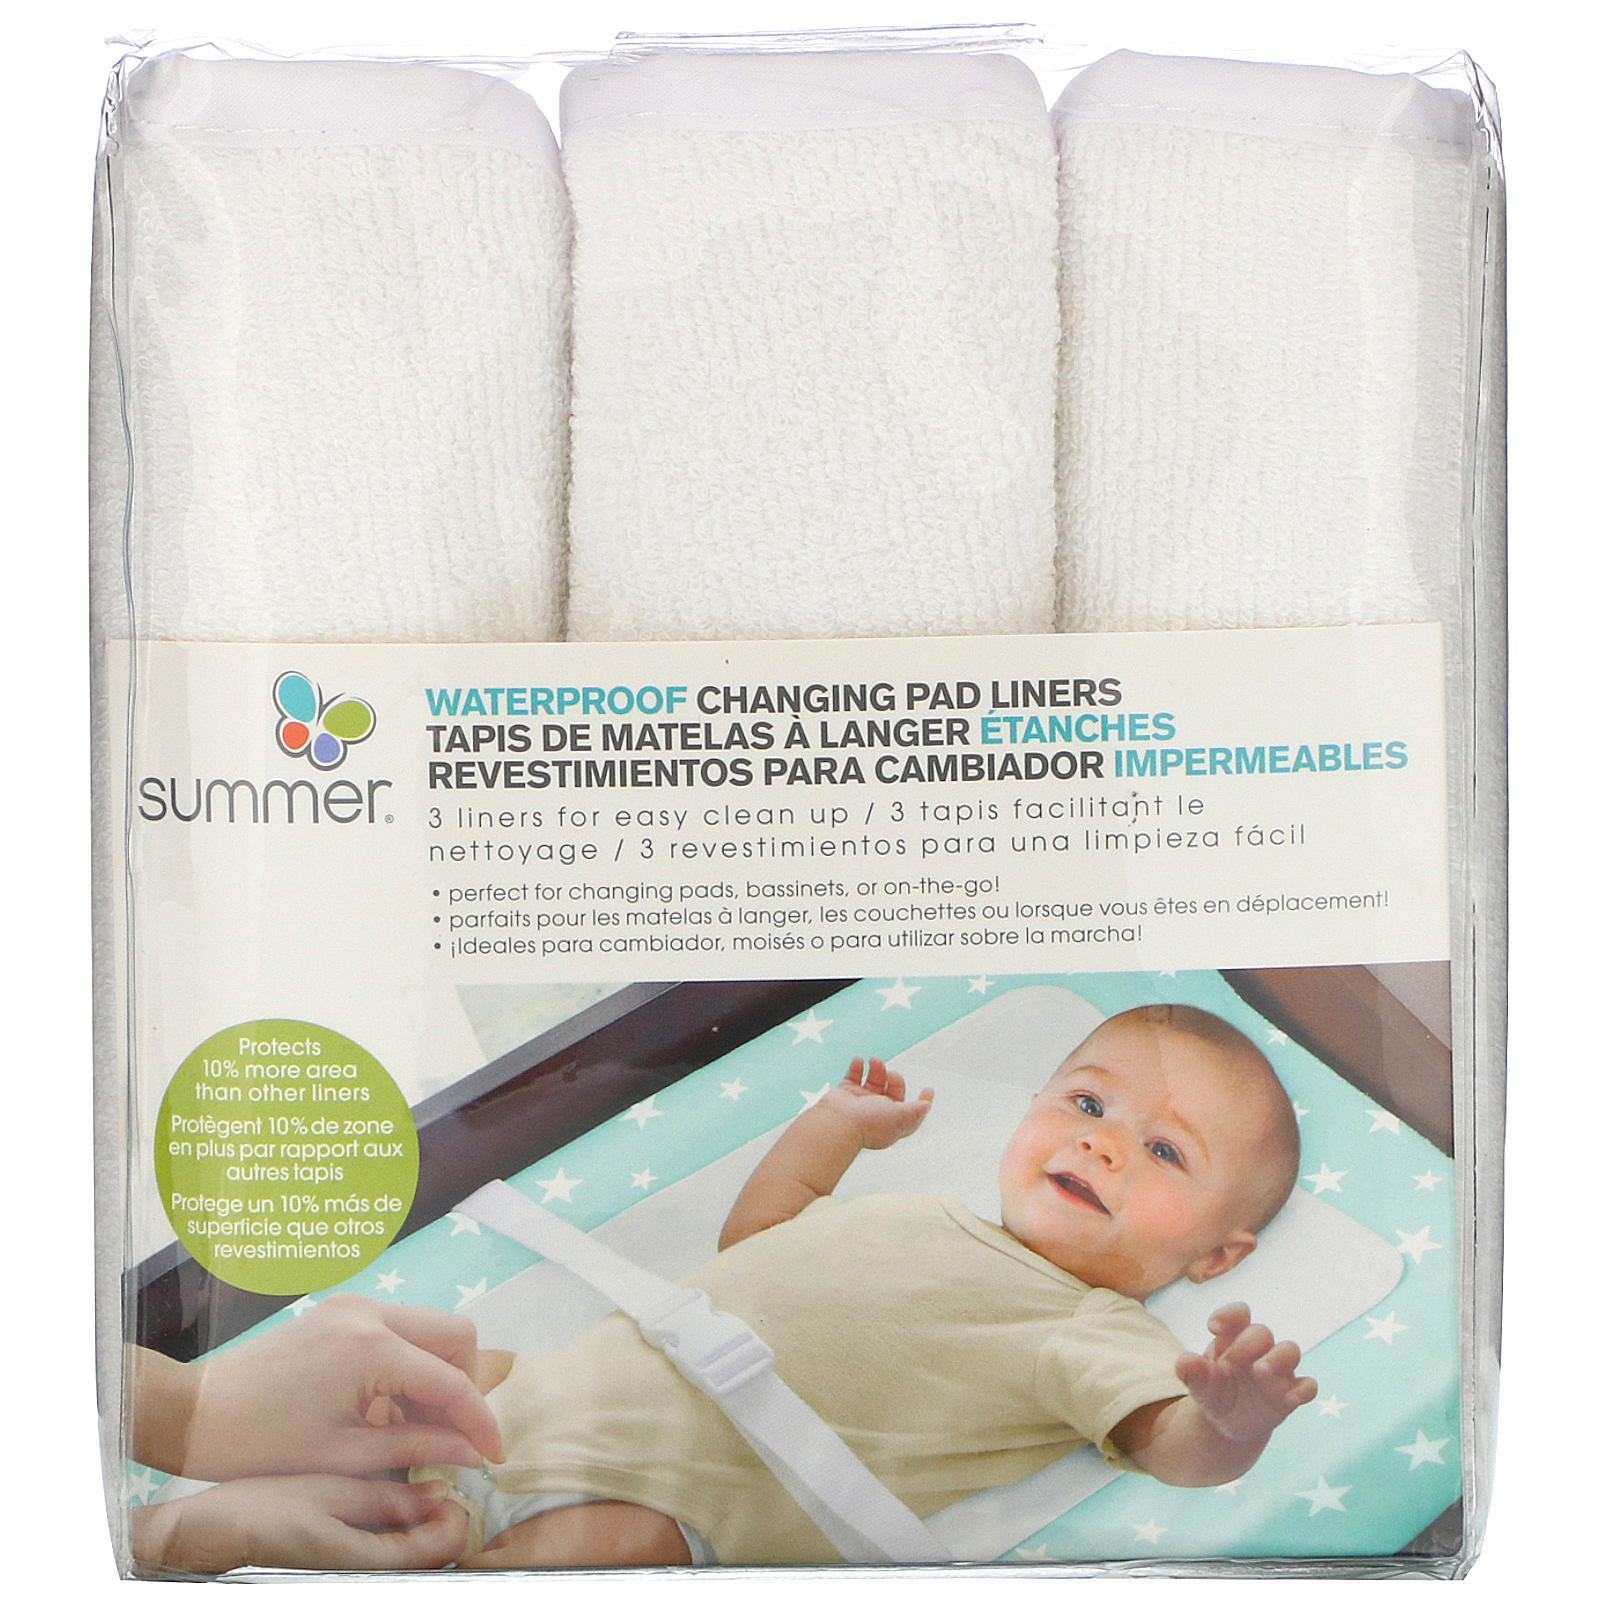 Summer Infant, Water Proof Changing Pad Liners, 3 Count